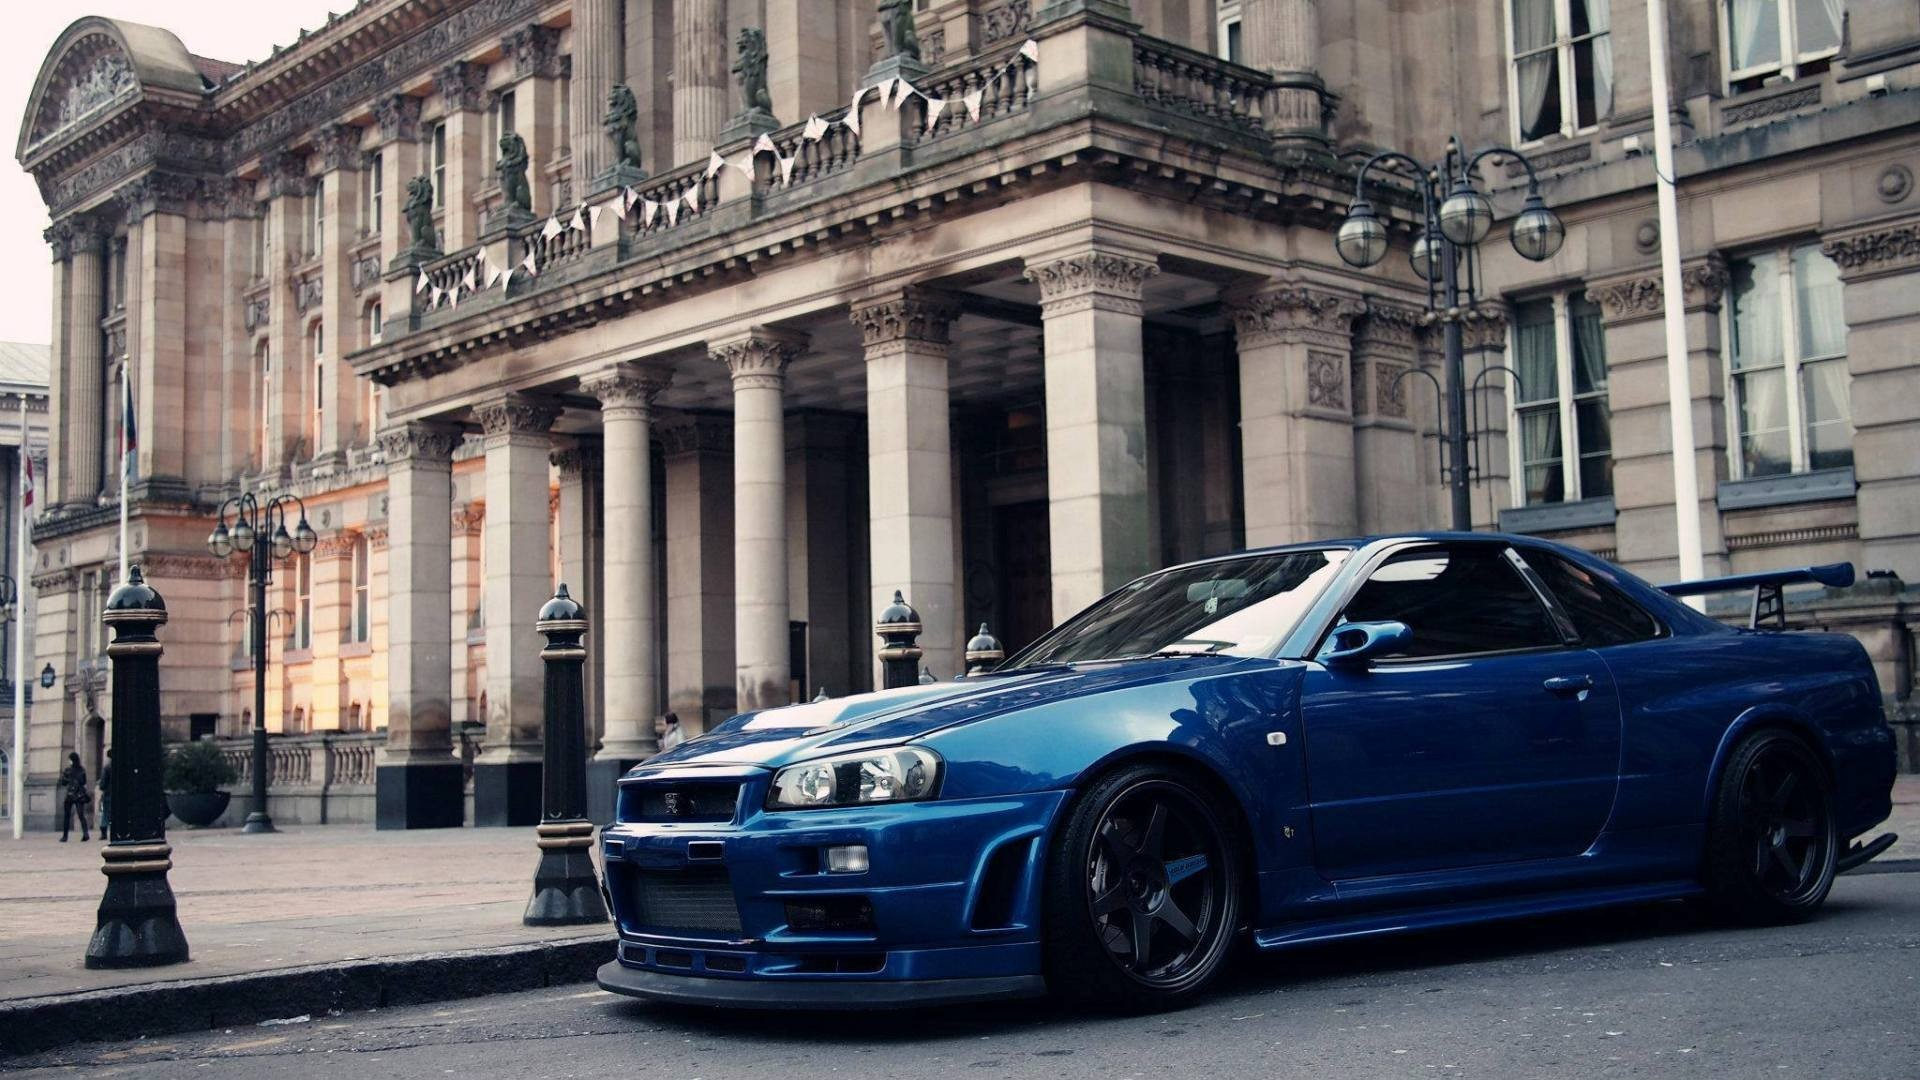 1920x1080 Nissan Skyline Gtr Wallpaper Full HD White Widescreen Iphone Blue Nismo :  Archived at Car Wallpaper – Slhando.com Nissan Skyline GTR Wallpapers | A…  ...